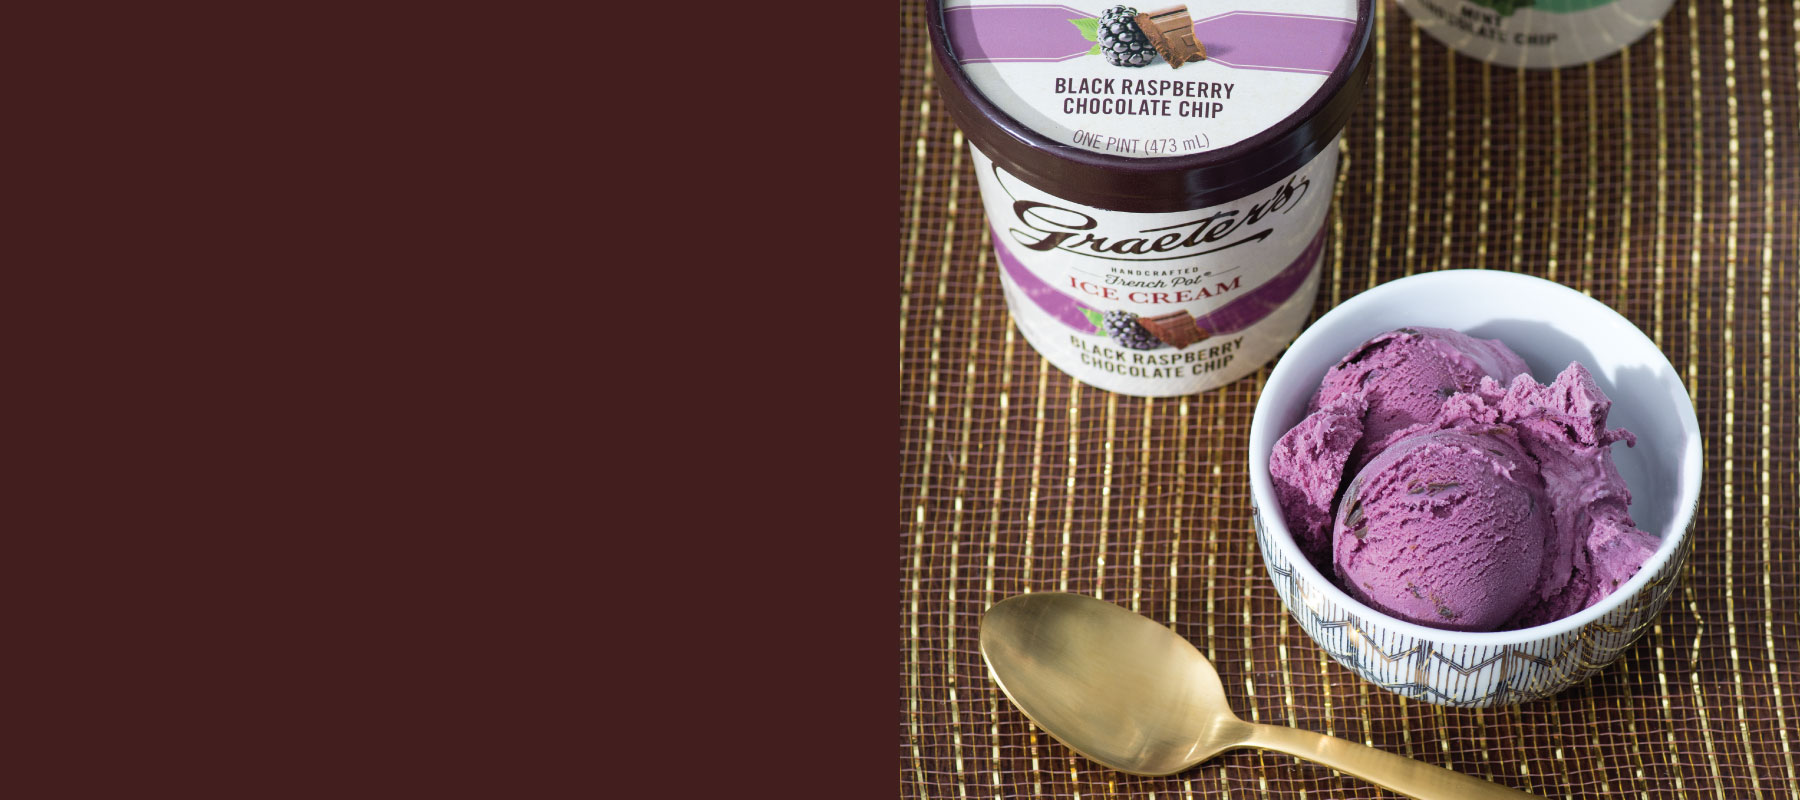 Impress with Graeter's Business Gifts